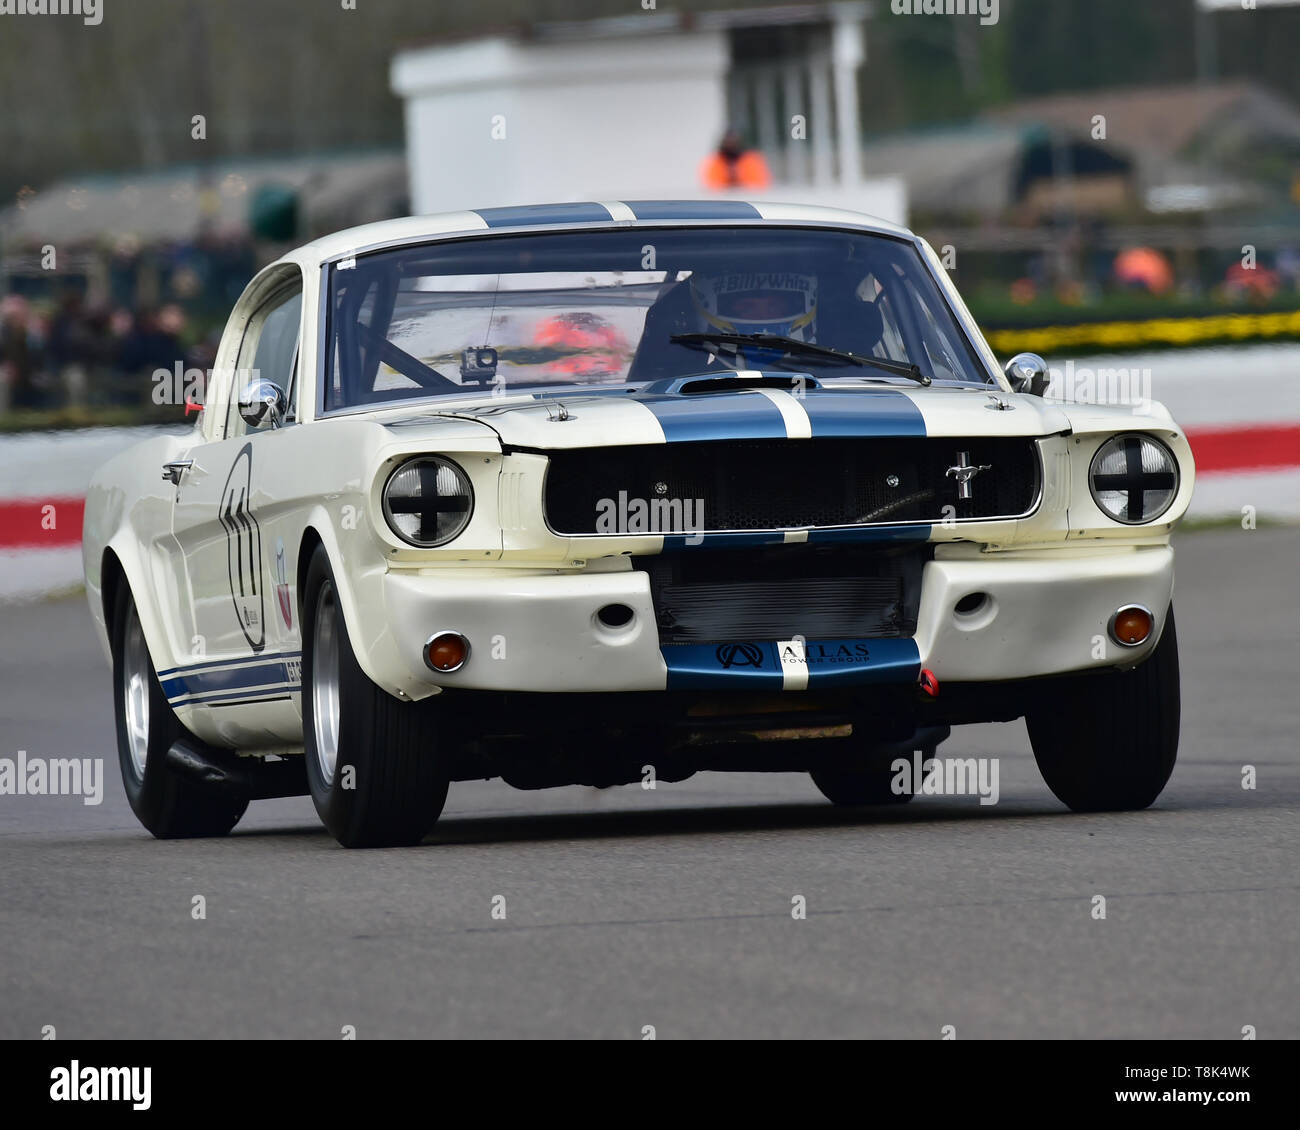 Emanuele Pirro, Ben Mitchell, Ford Shelby Mustang 350 GT, Graham Hill Trophy, Closed cockpit GT cars, Prototype cars, Spirit of the RAC TT Races 1960- - Stock Image